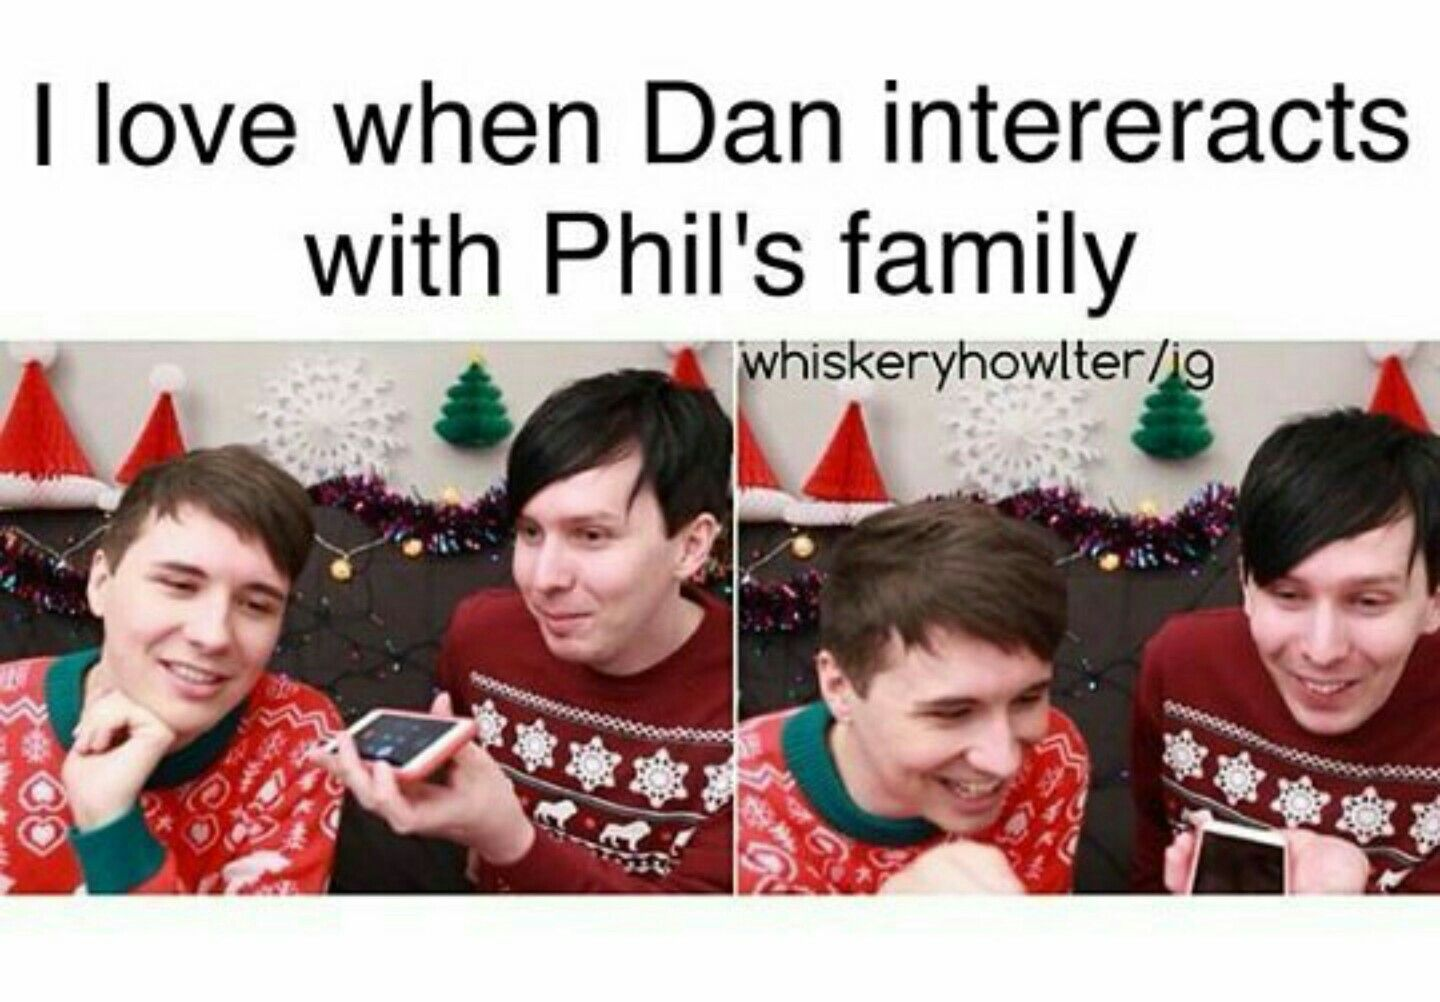 They had 20 seconds to answer a question and he didn't even think about it because he was busy asking how phils mom was doing...